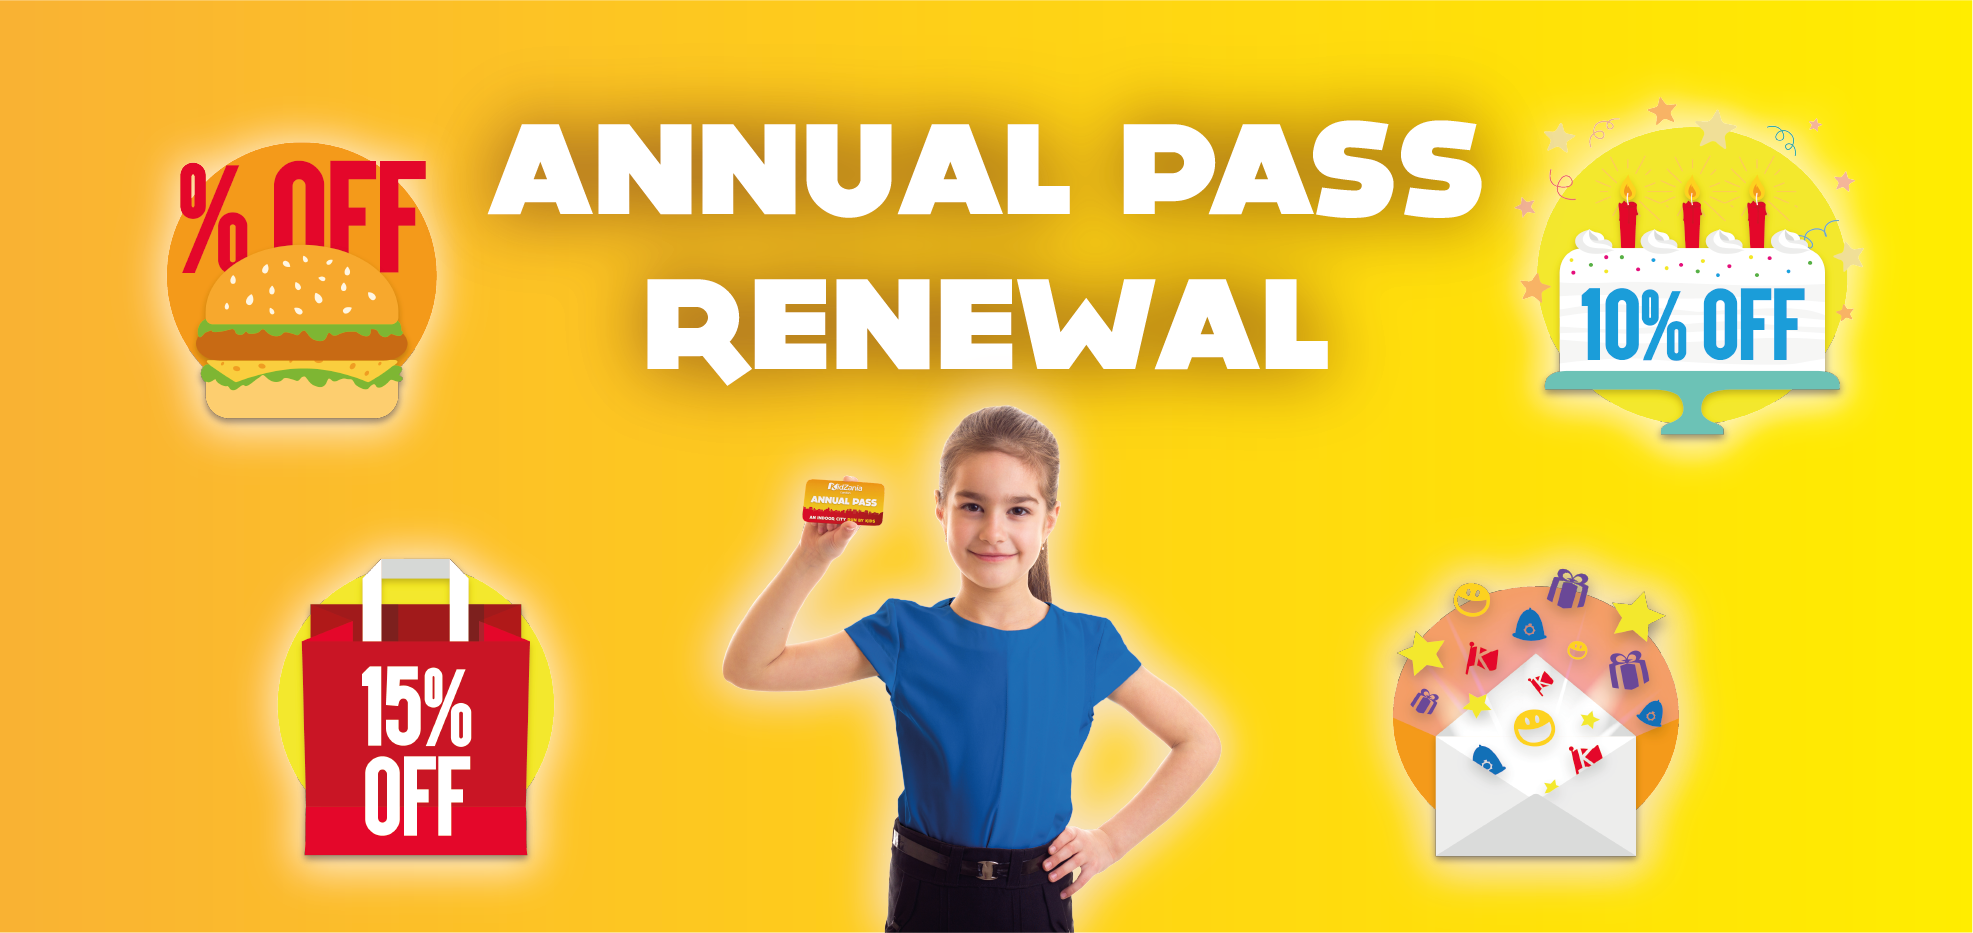 Annual Pass Renewal